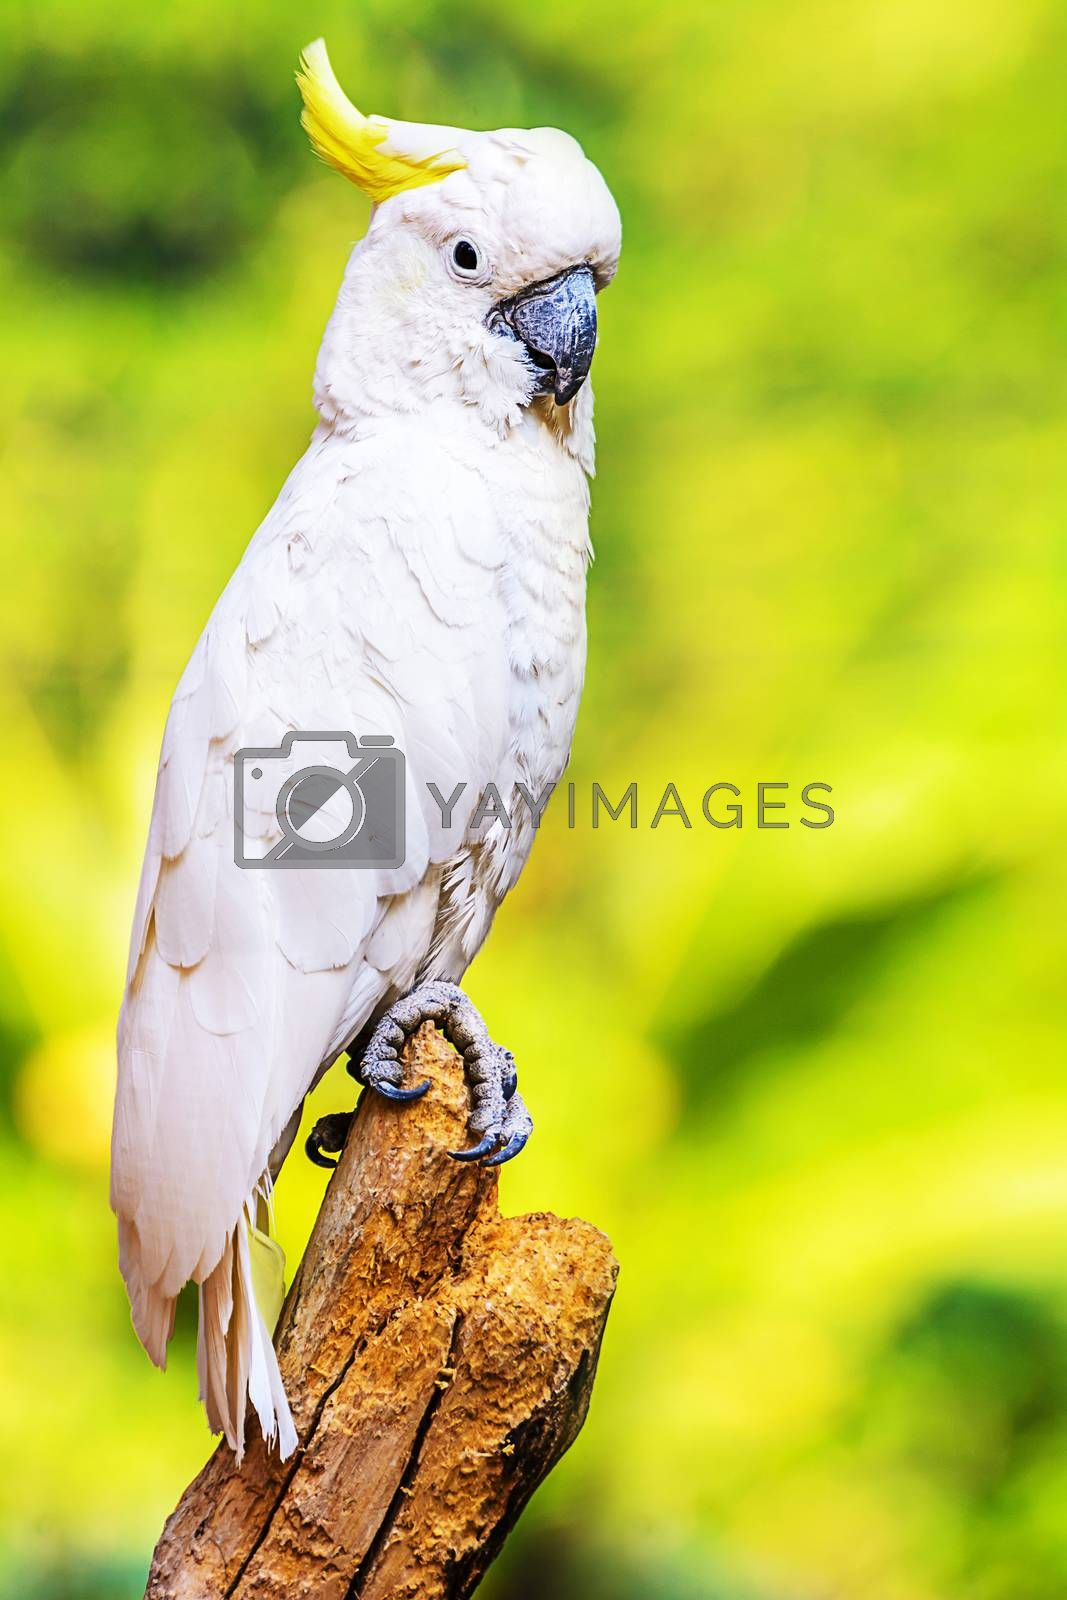 Royalty free image of Yellow Crested Cockatoo by NuwatPhoto